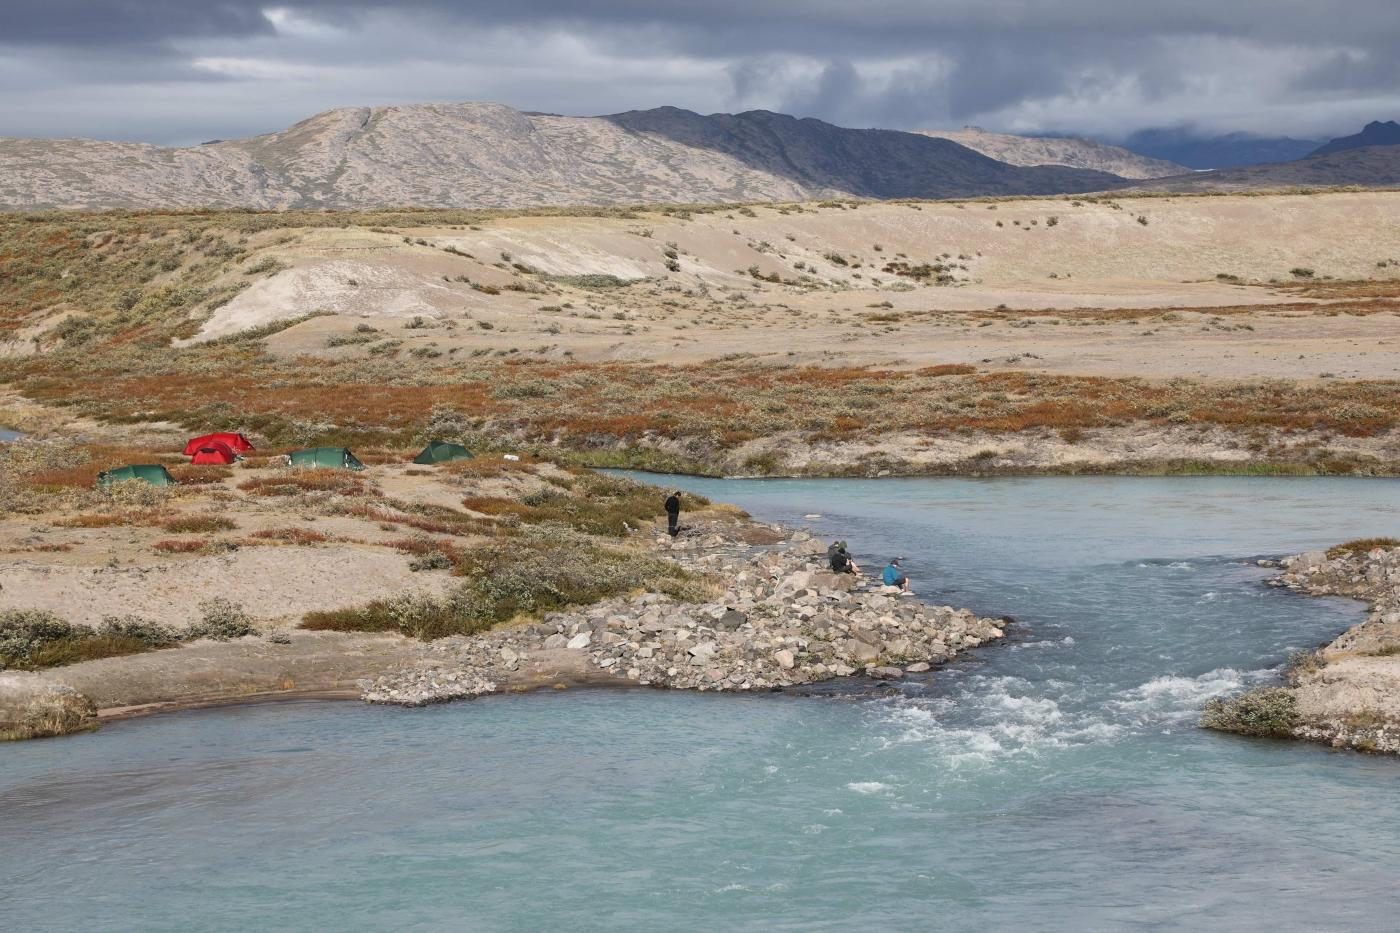 Greenland Outdoors campsite close to river in summer. Photo by Morten Christensen